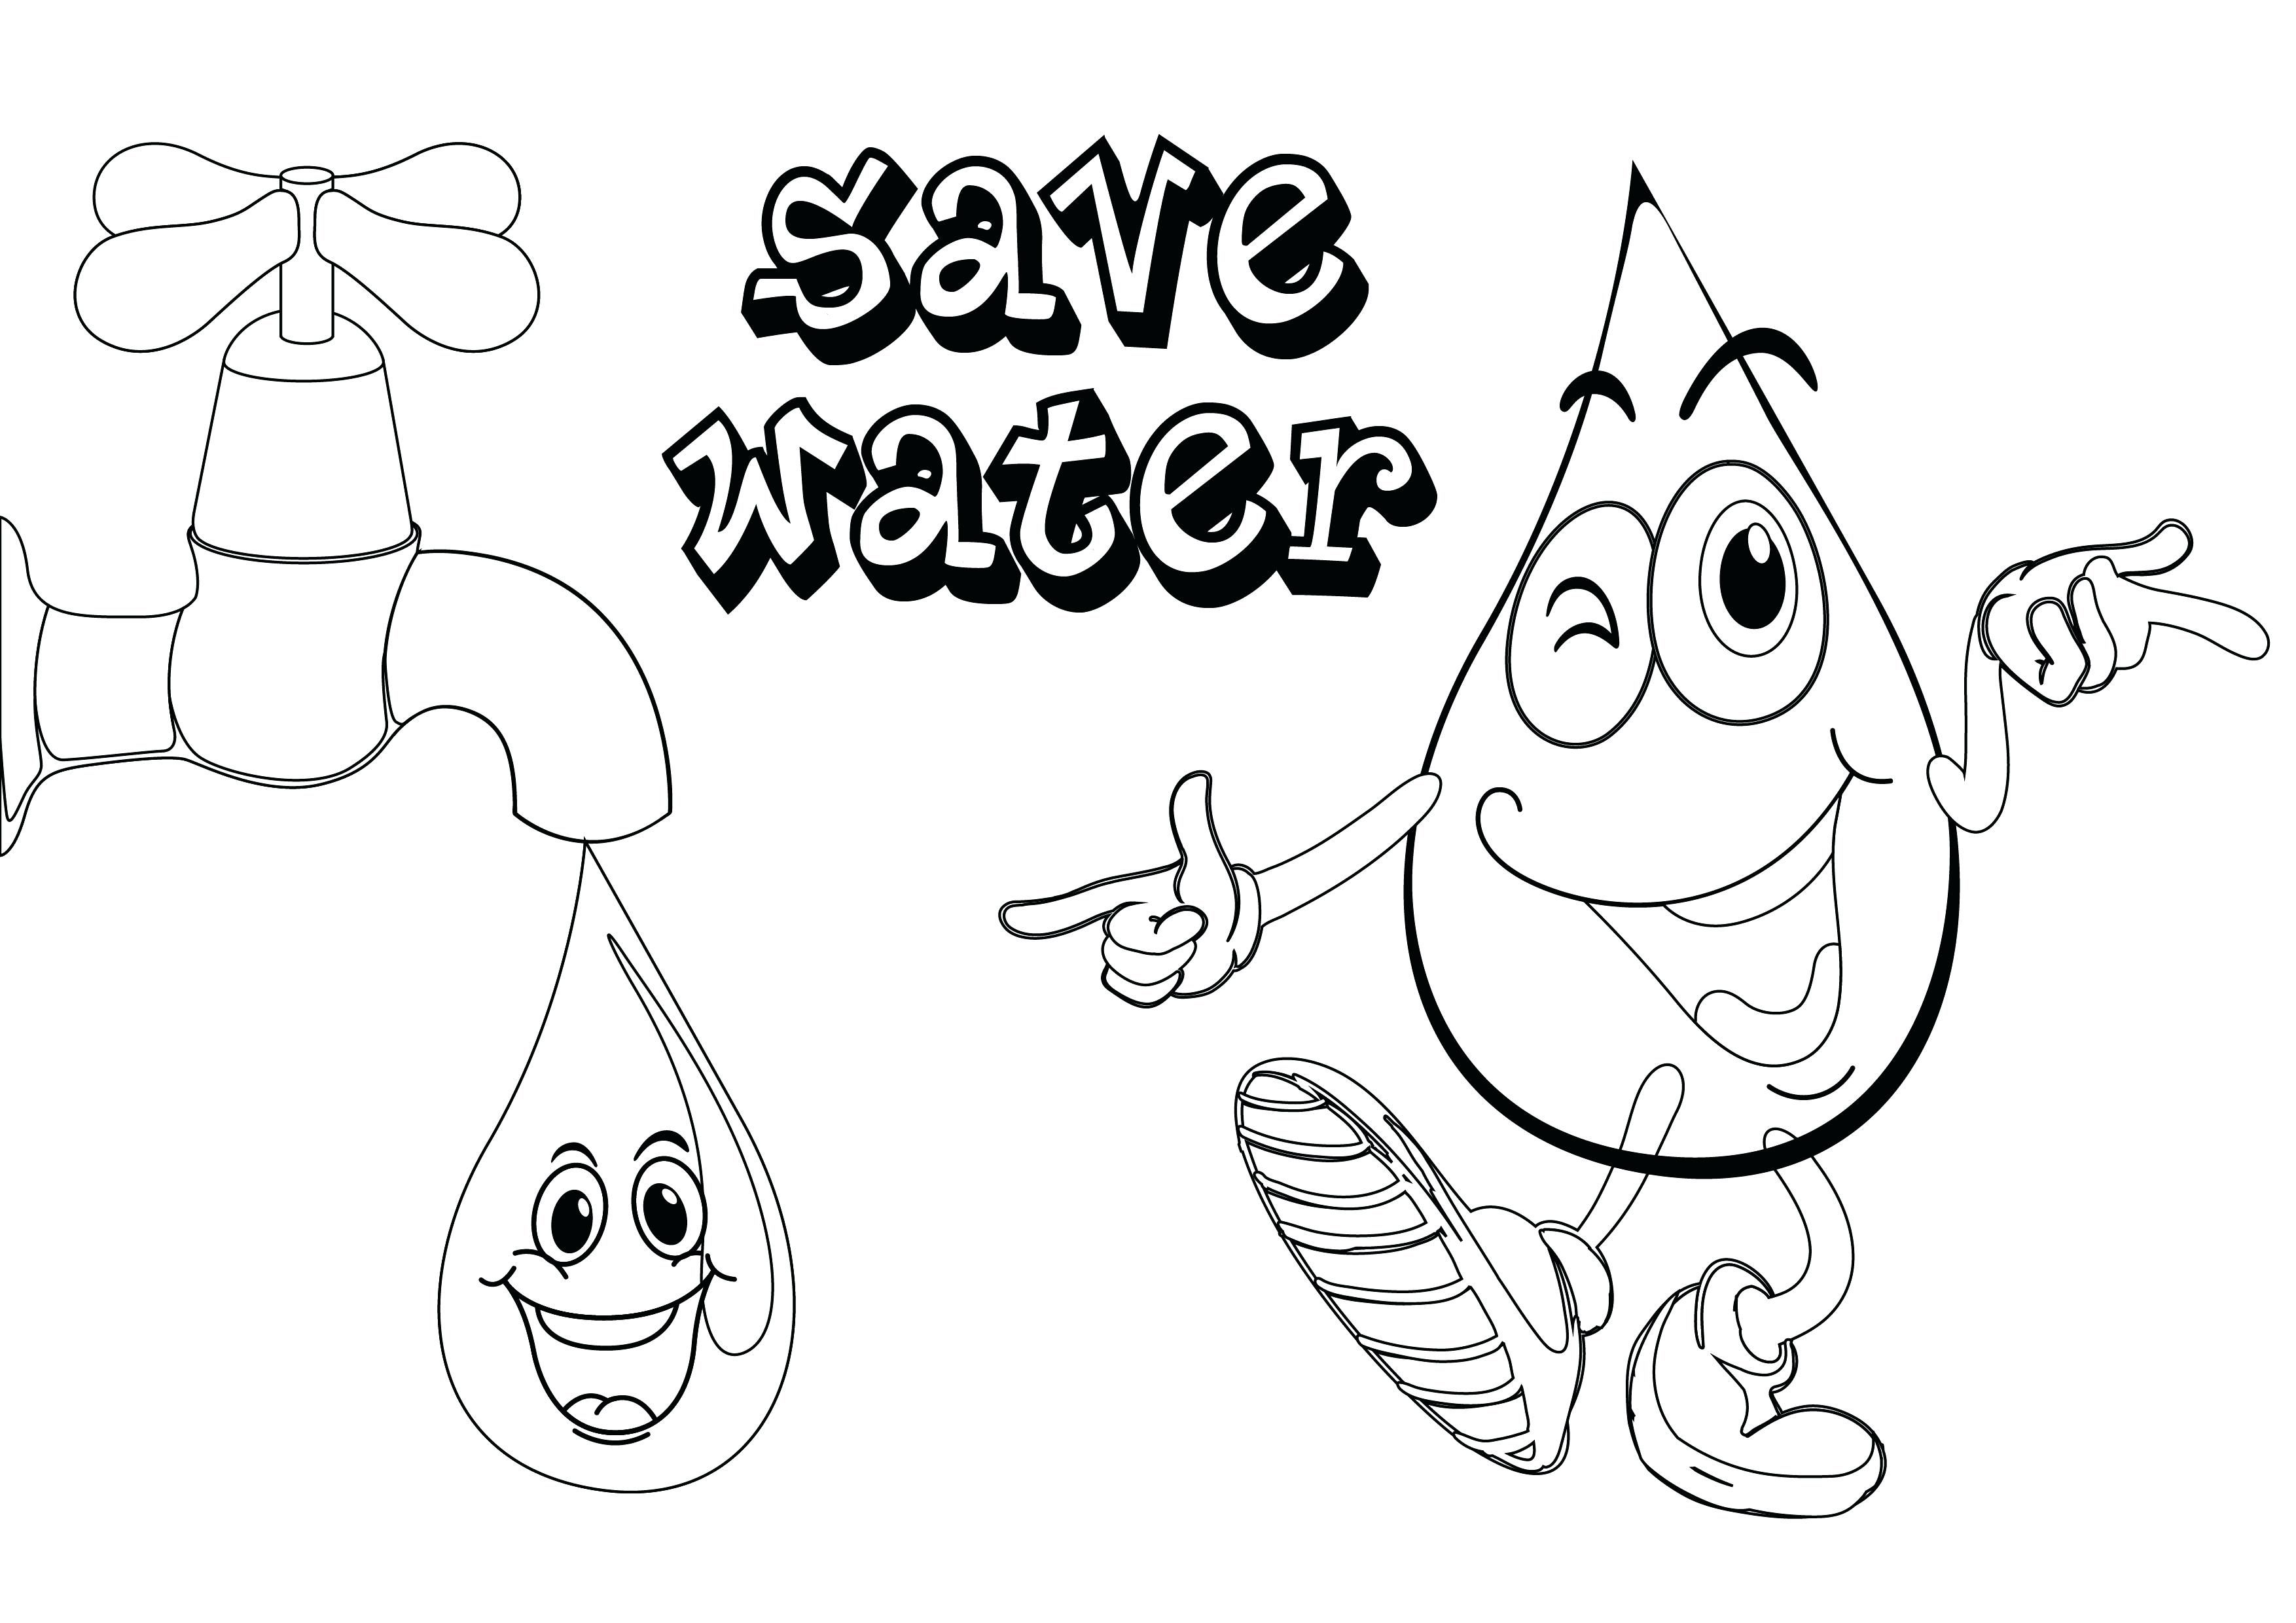 Drinking Water Coloring Pages At Getcolorings